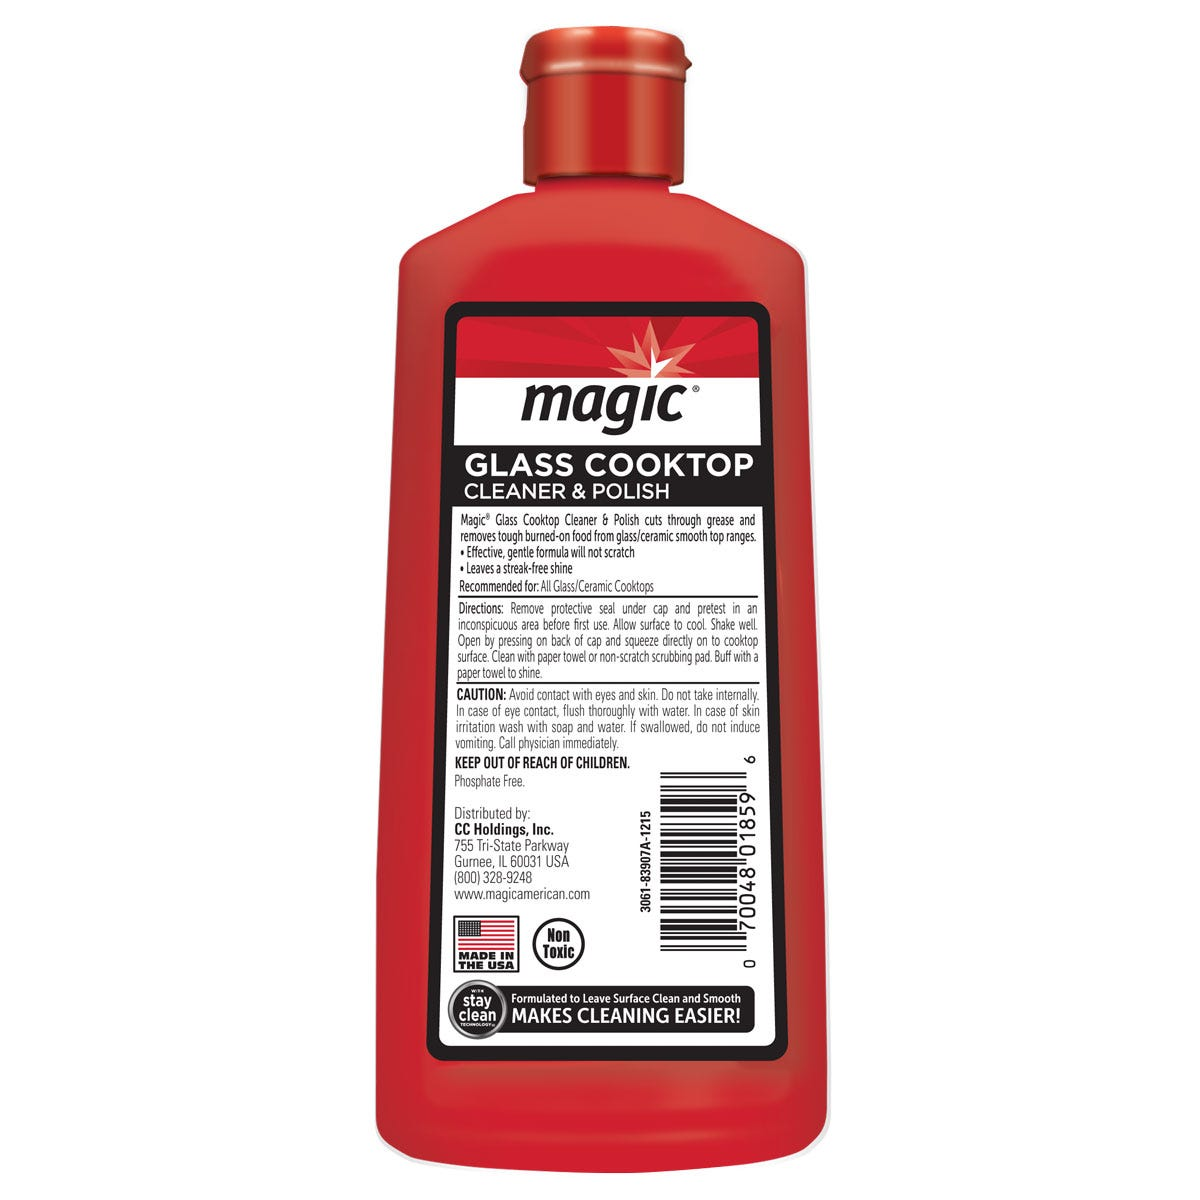 Magic Glass Cooktop Cleaner Back Label